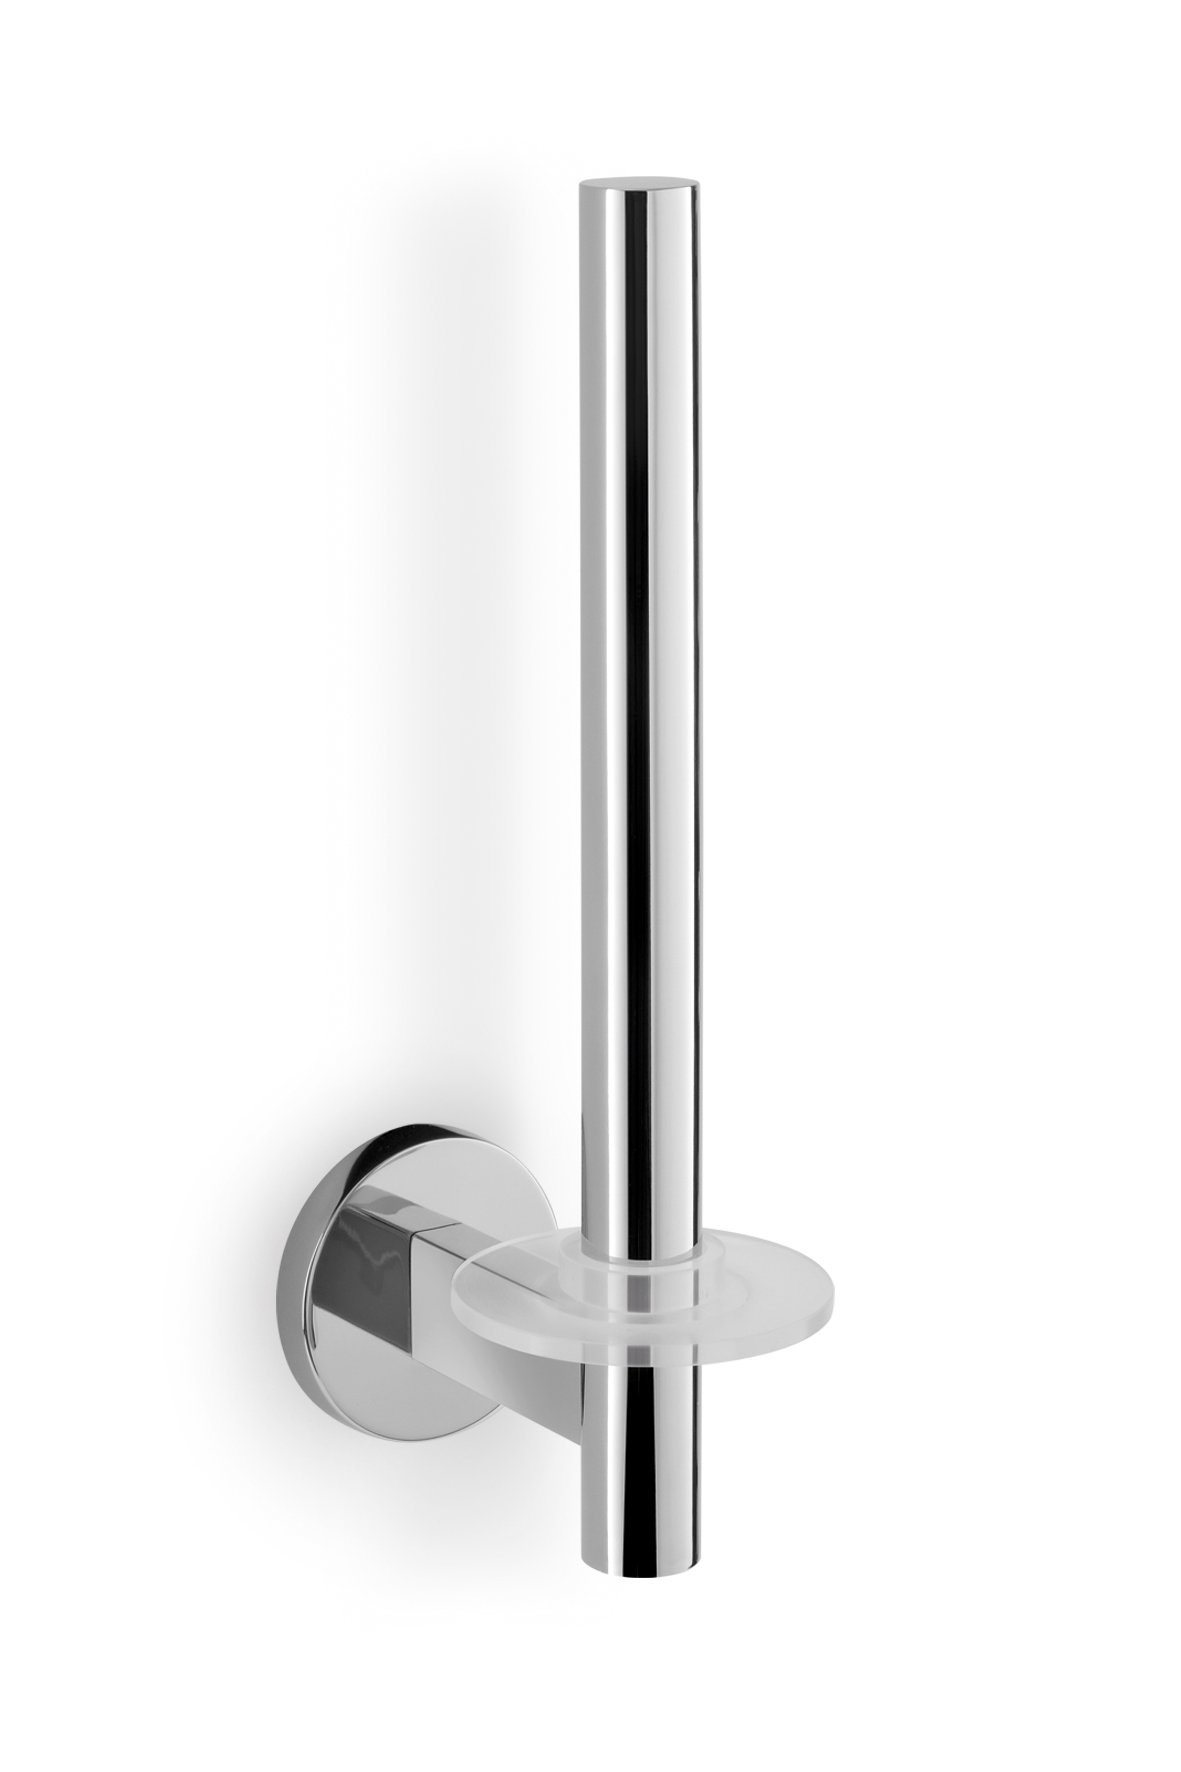 Buy Zack 40053 Scala Wall Mounted Spare Toilet Roll Holder, 9.84 by ...